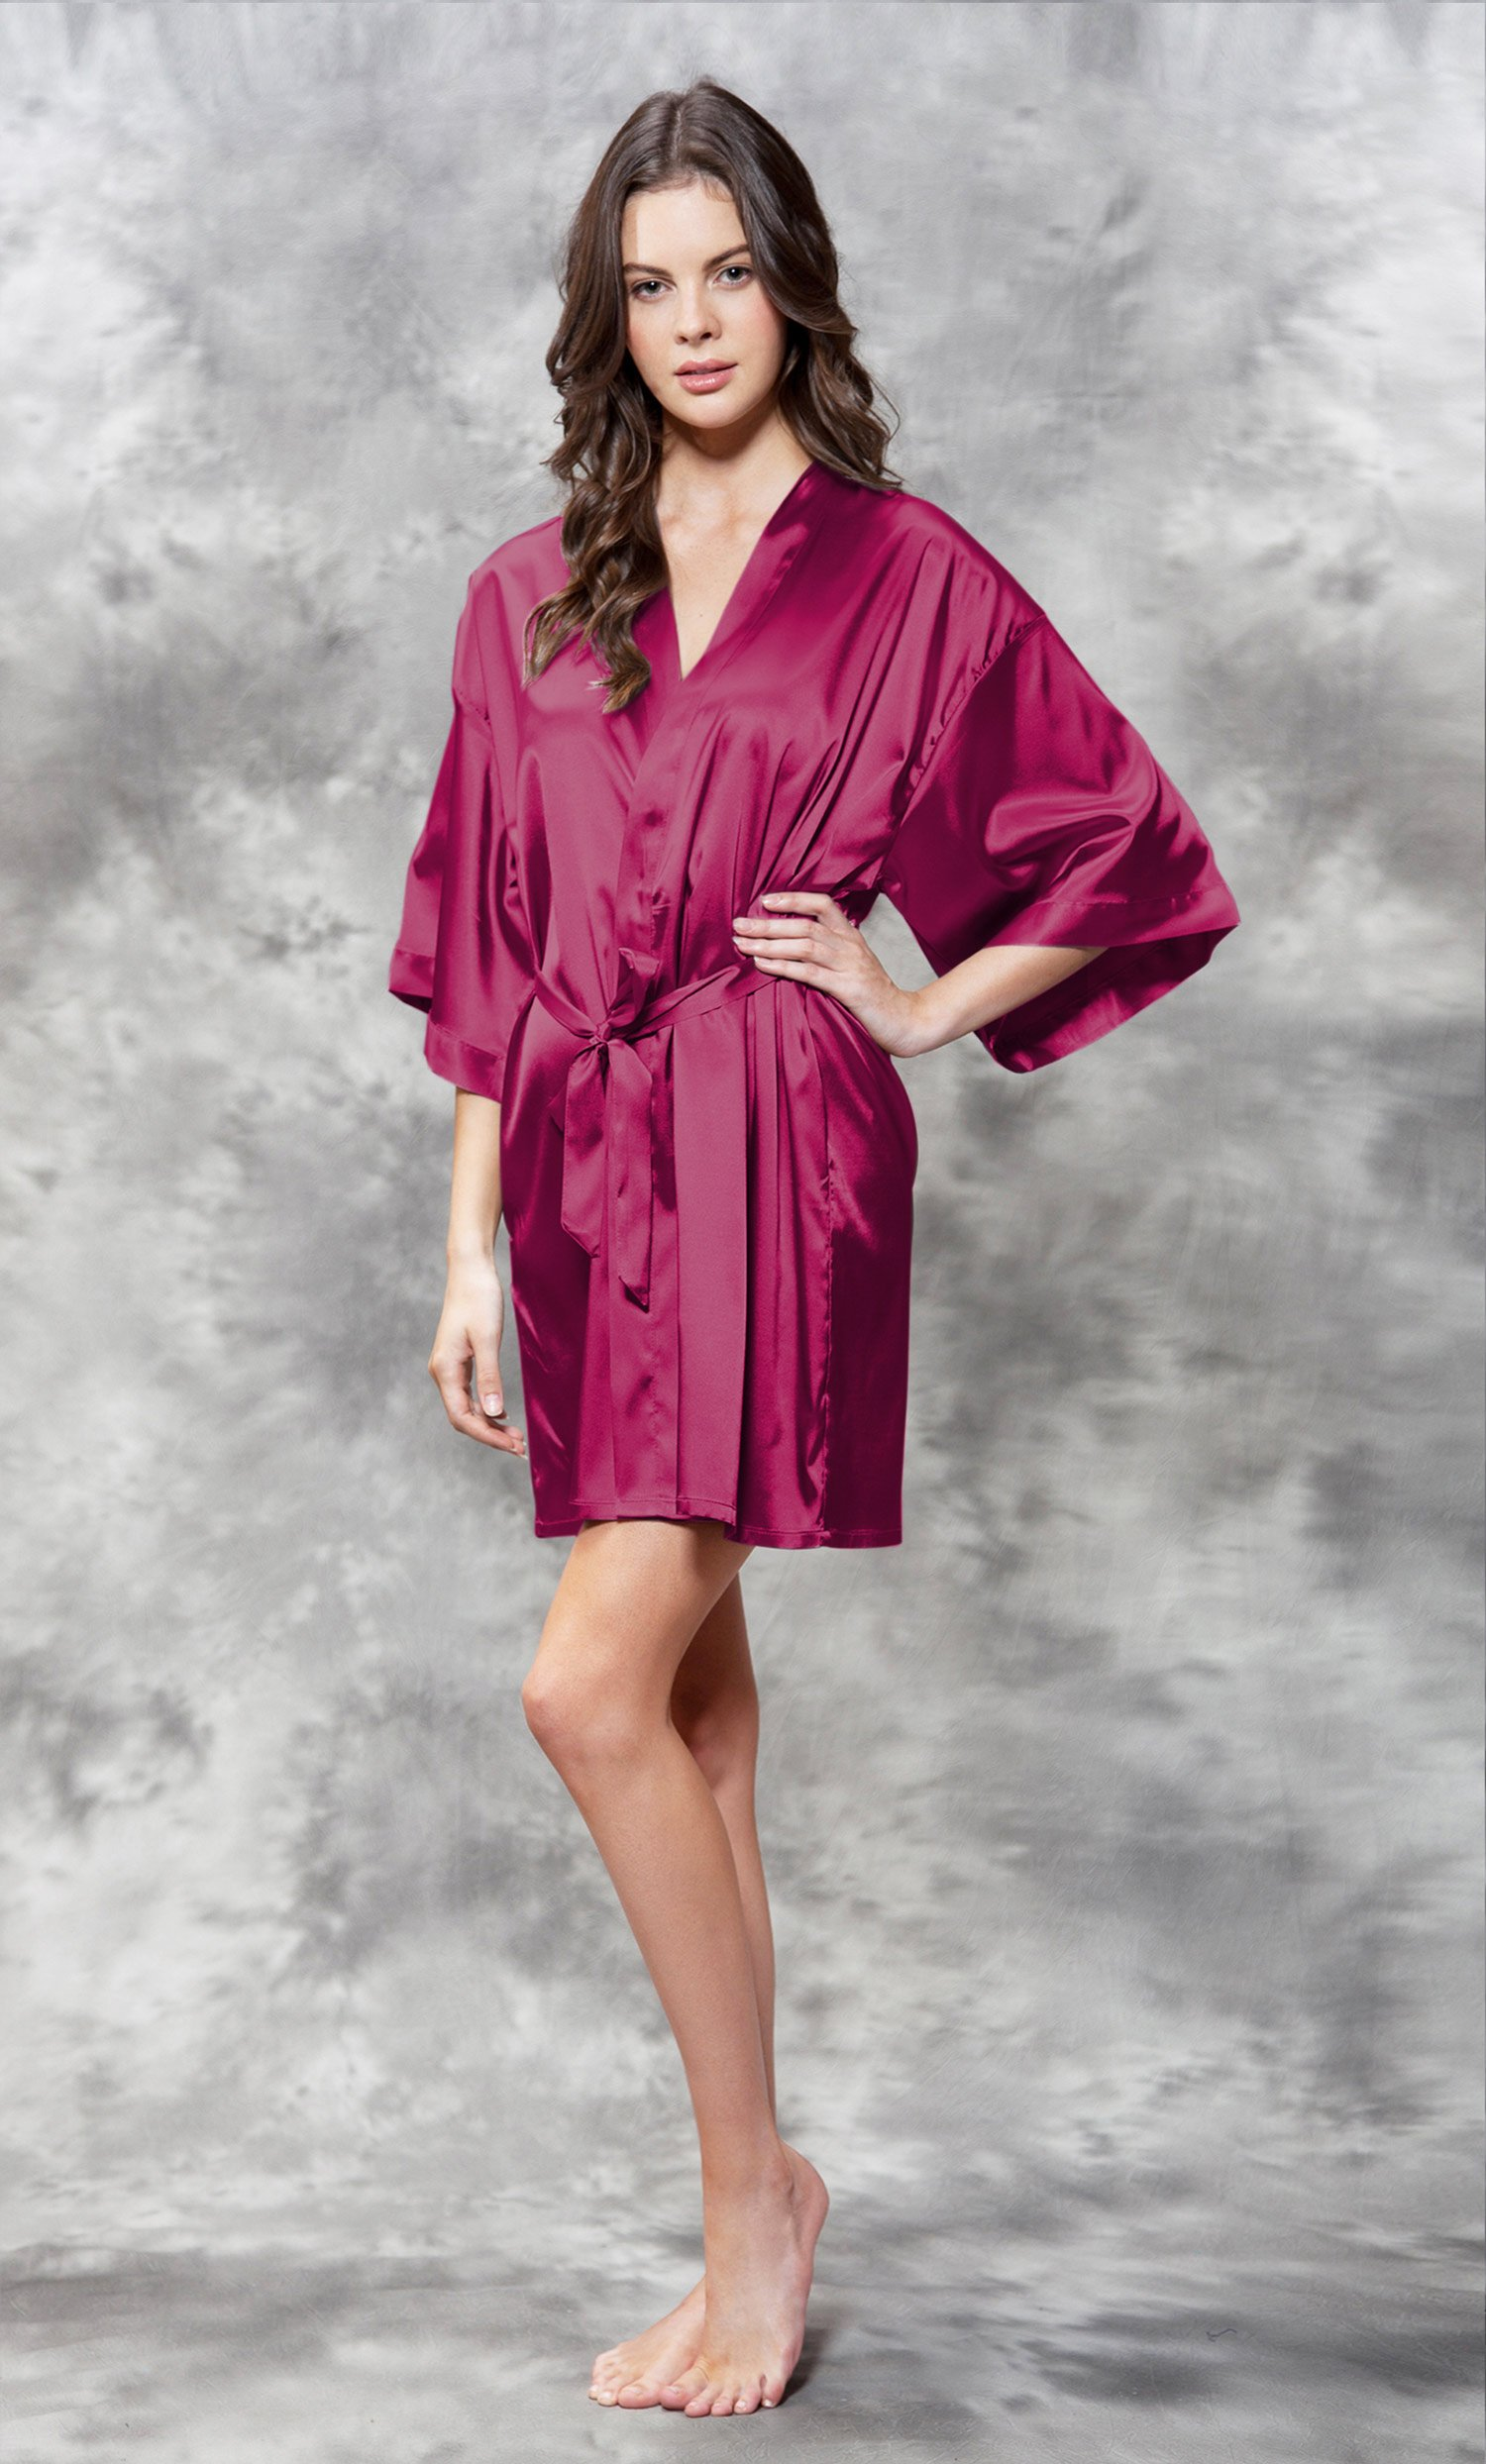 Bridesmaid Clear Rhinestone Satin Kimono Wine Red Short Robe-Robemart.com